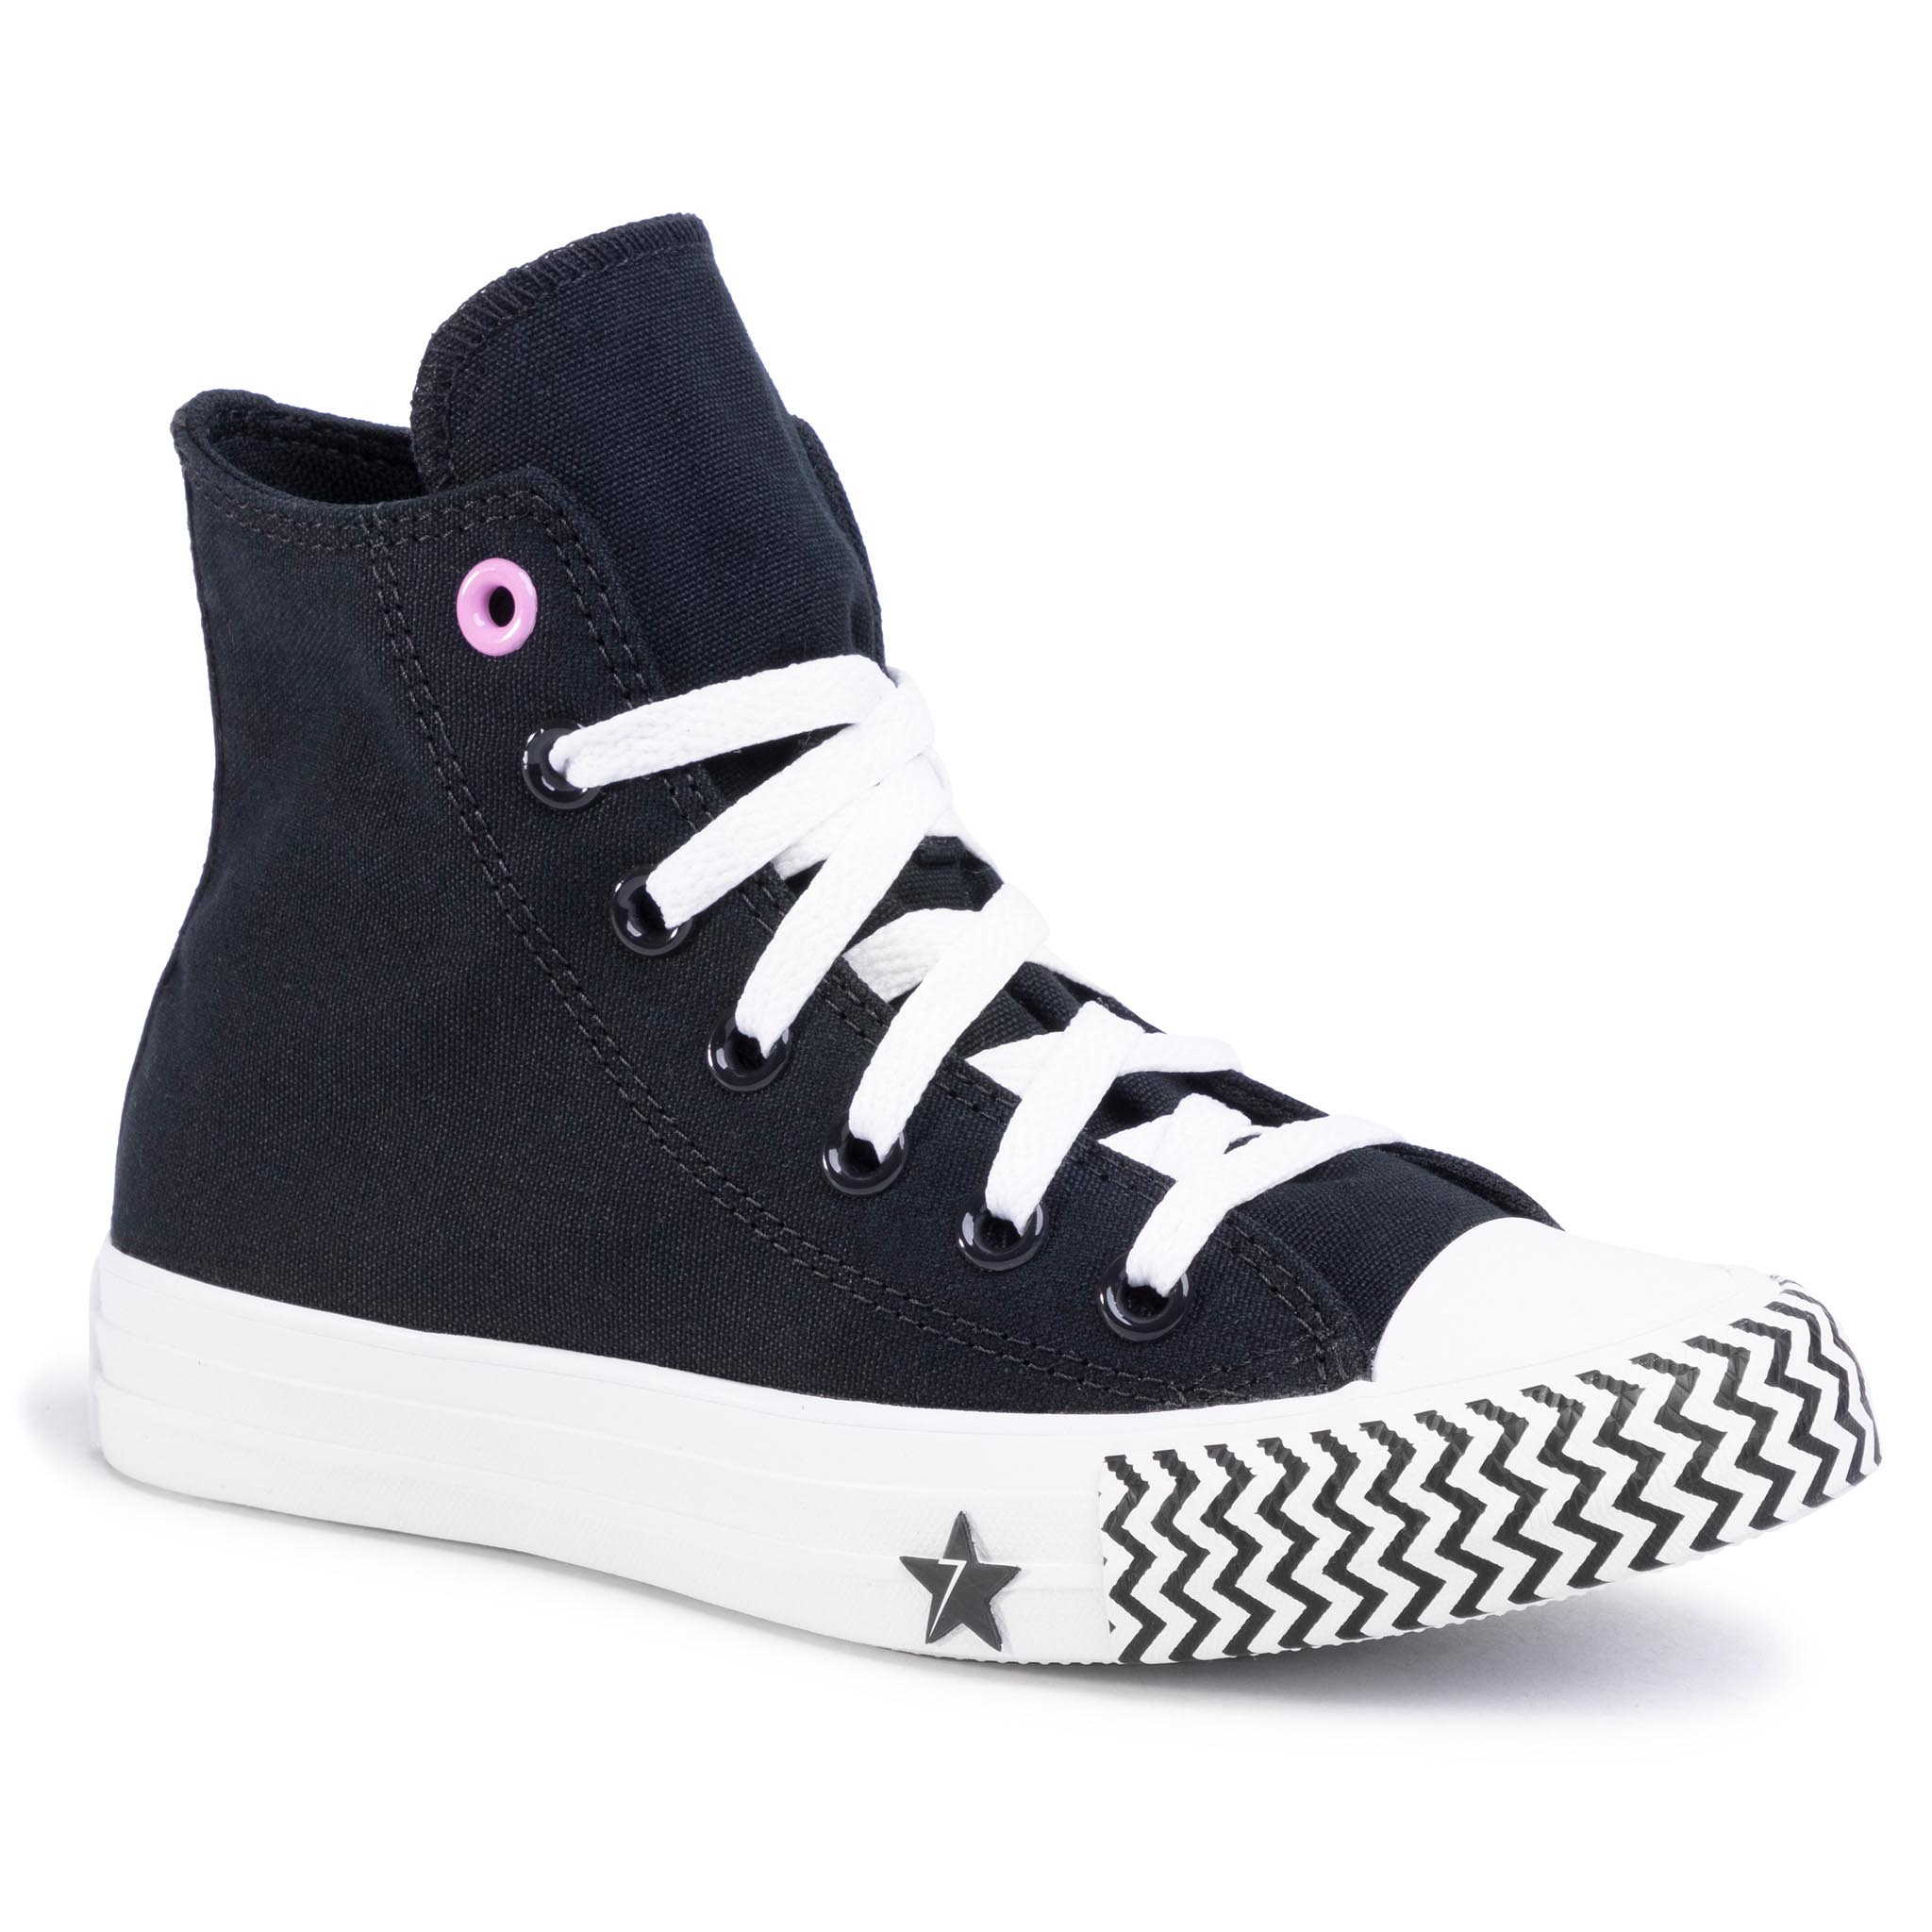 Teniși CONVERSE - Ctas Hi 566731C Black/University Red/White